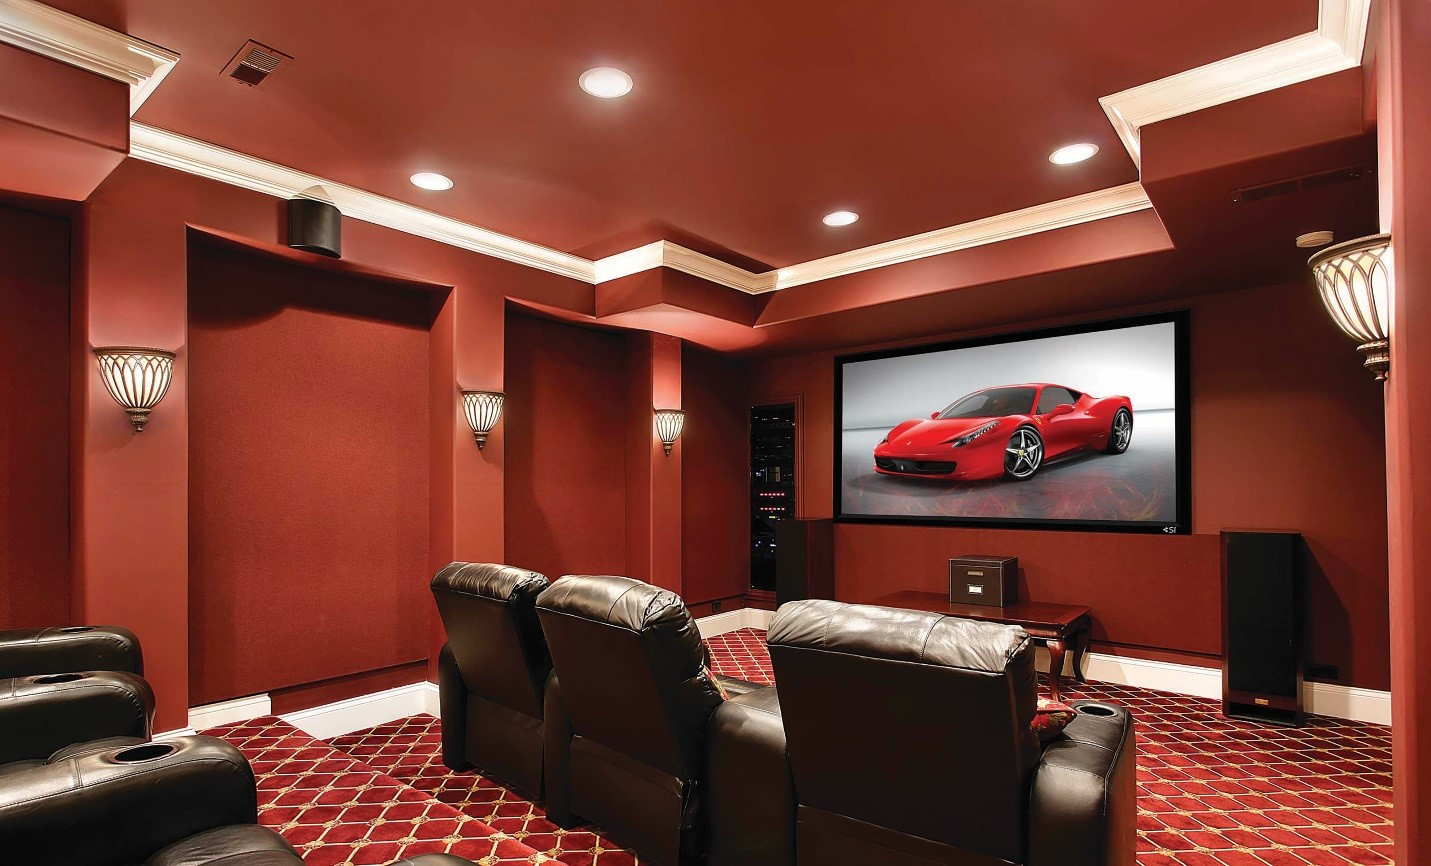 Picture Perfect: Ensuring the Best Images for Your Home Theater Installation